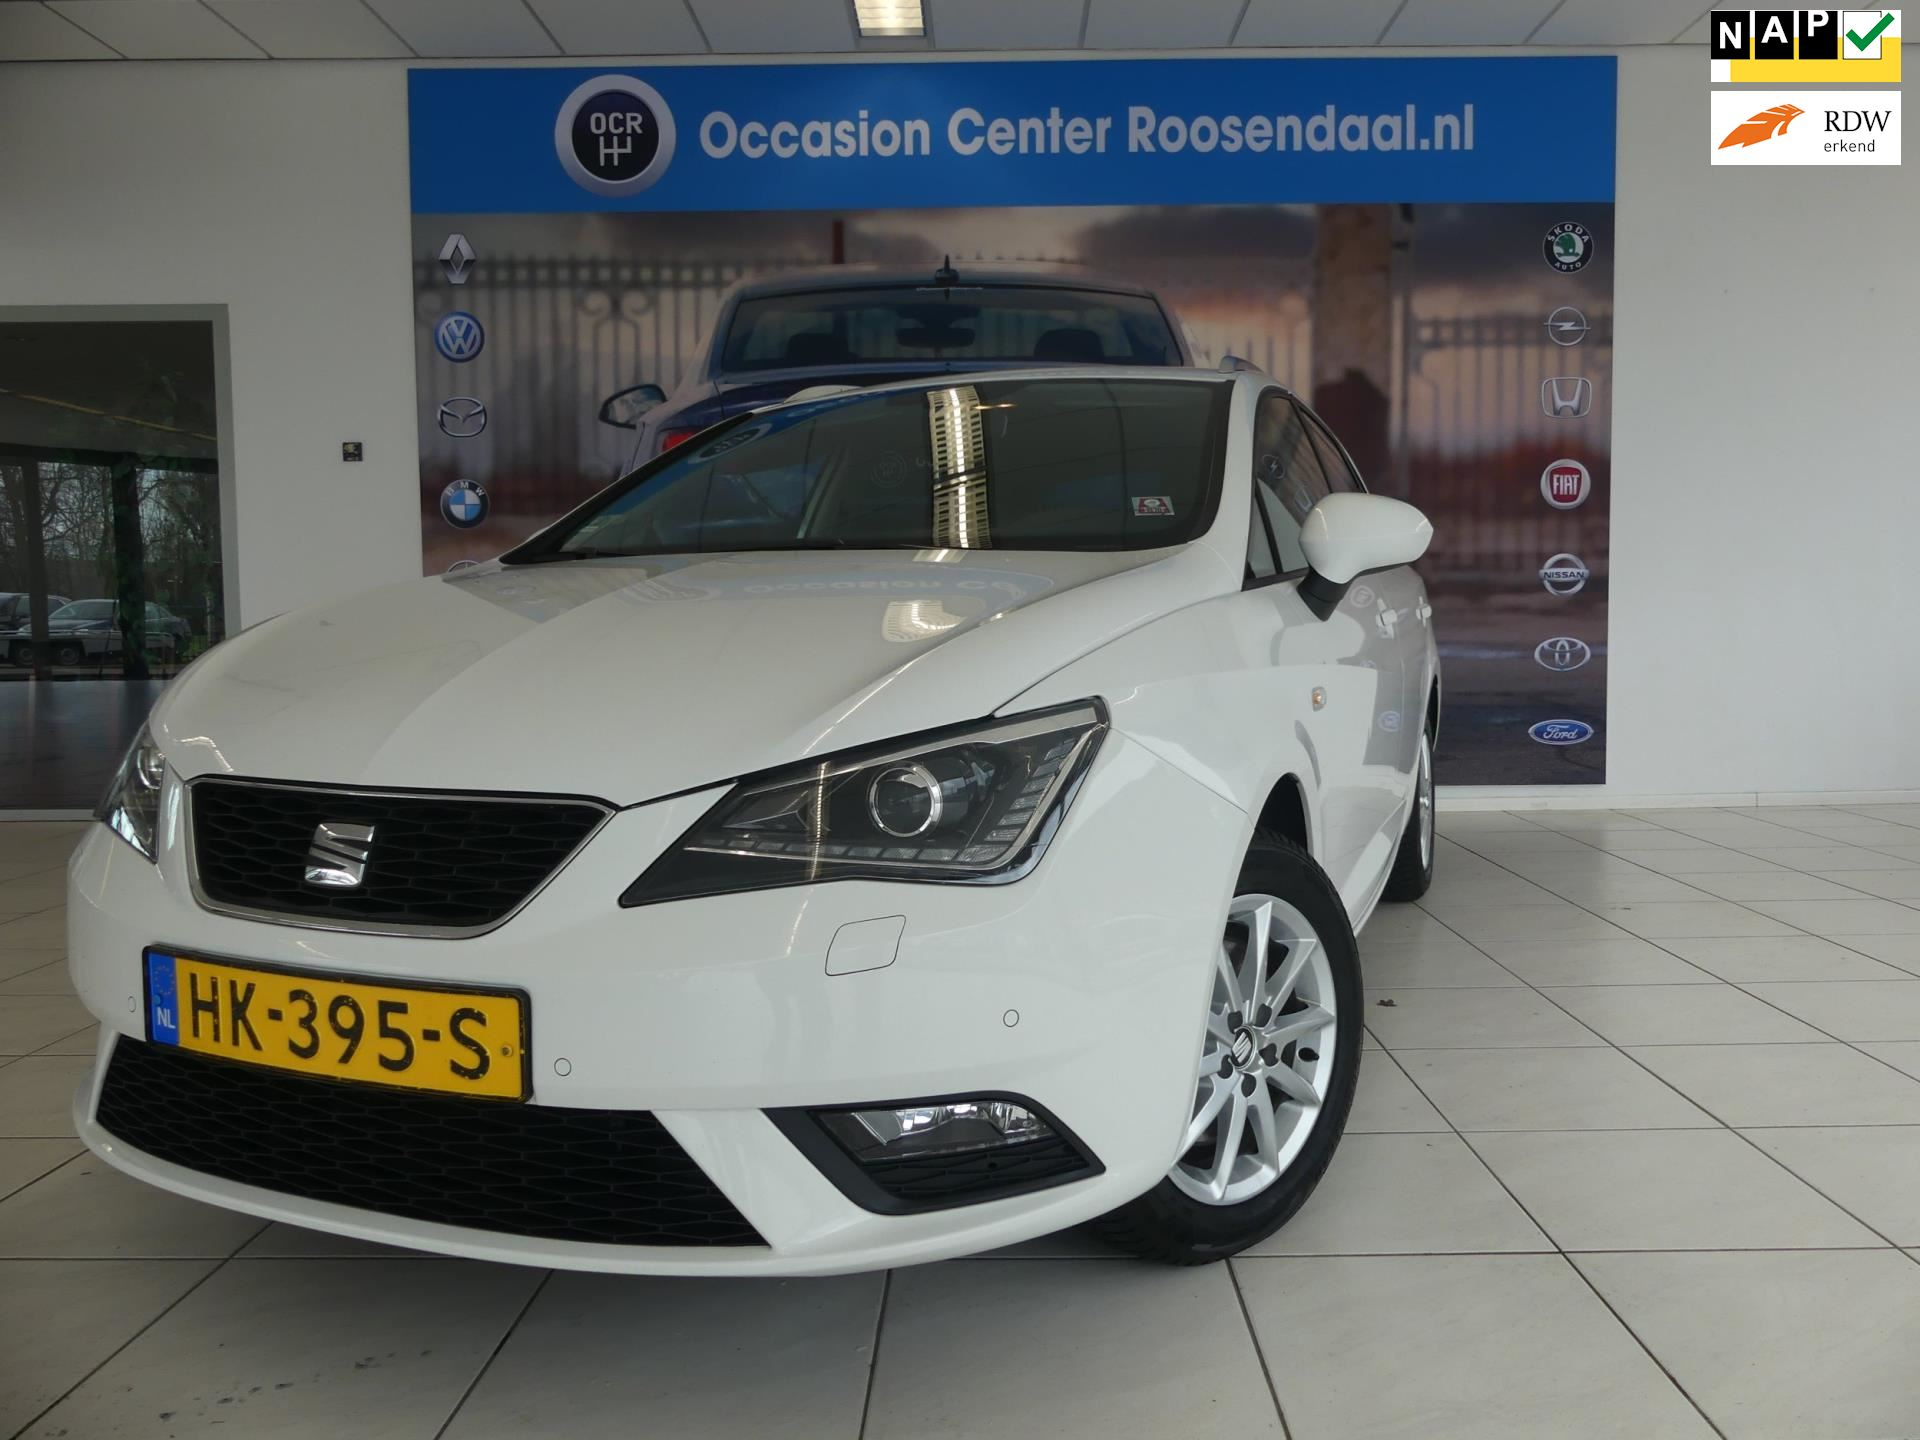 Seat Ibiza ST occasion - Occasion Center Roosendaal